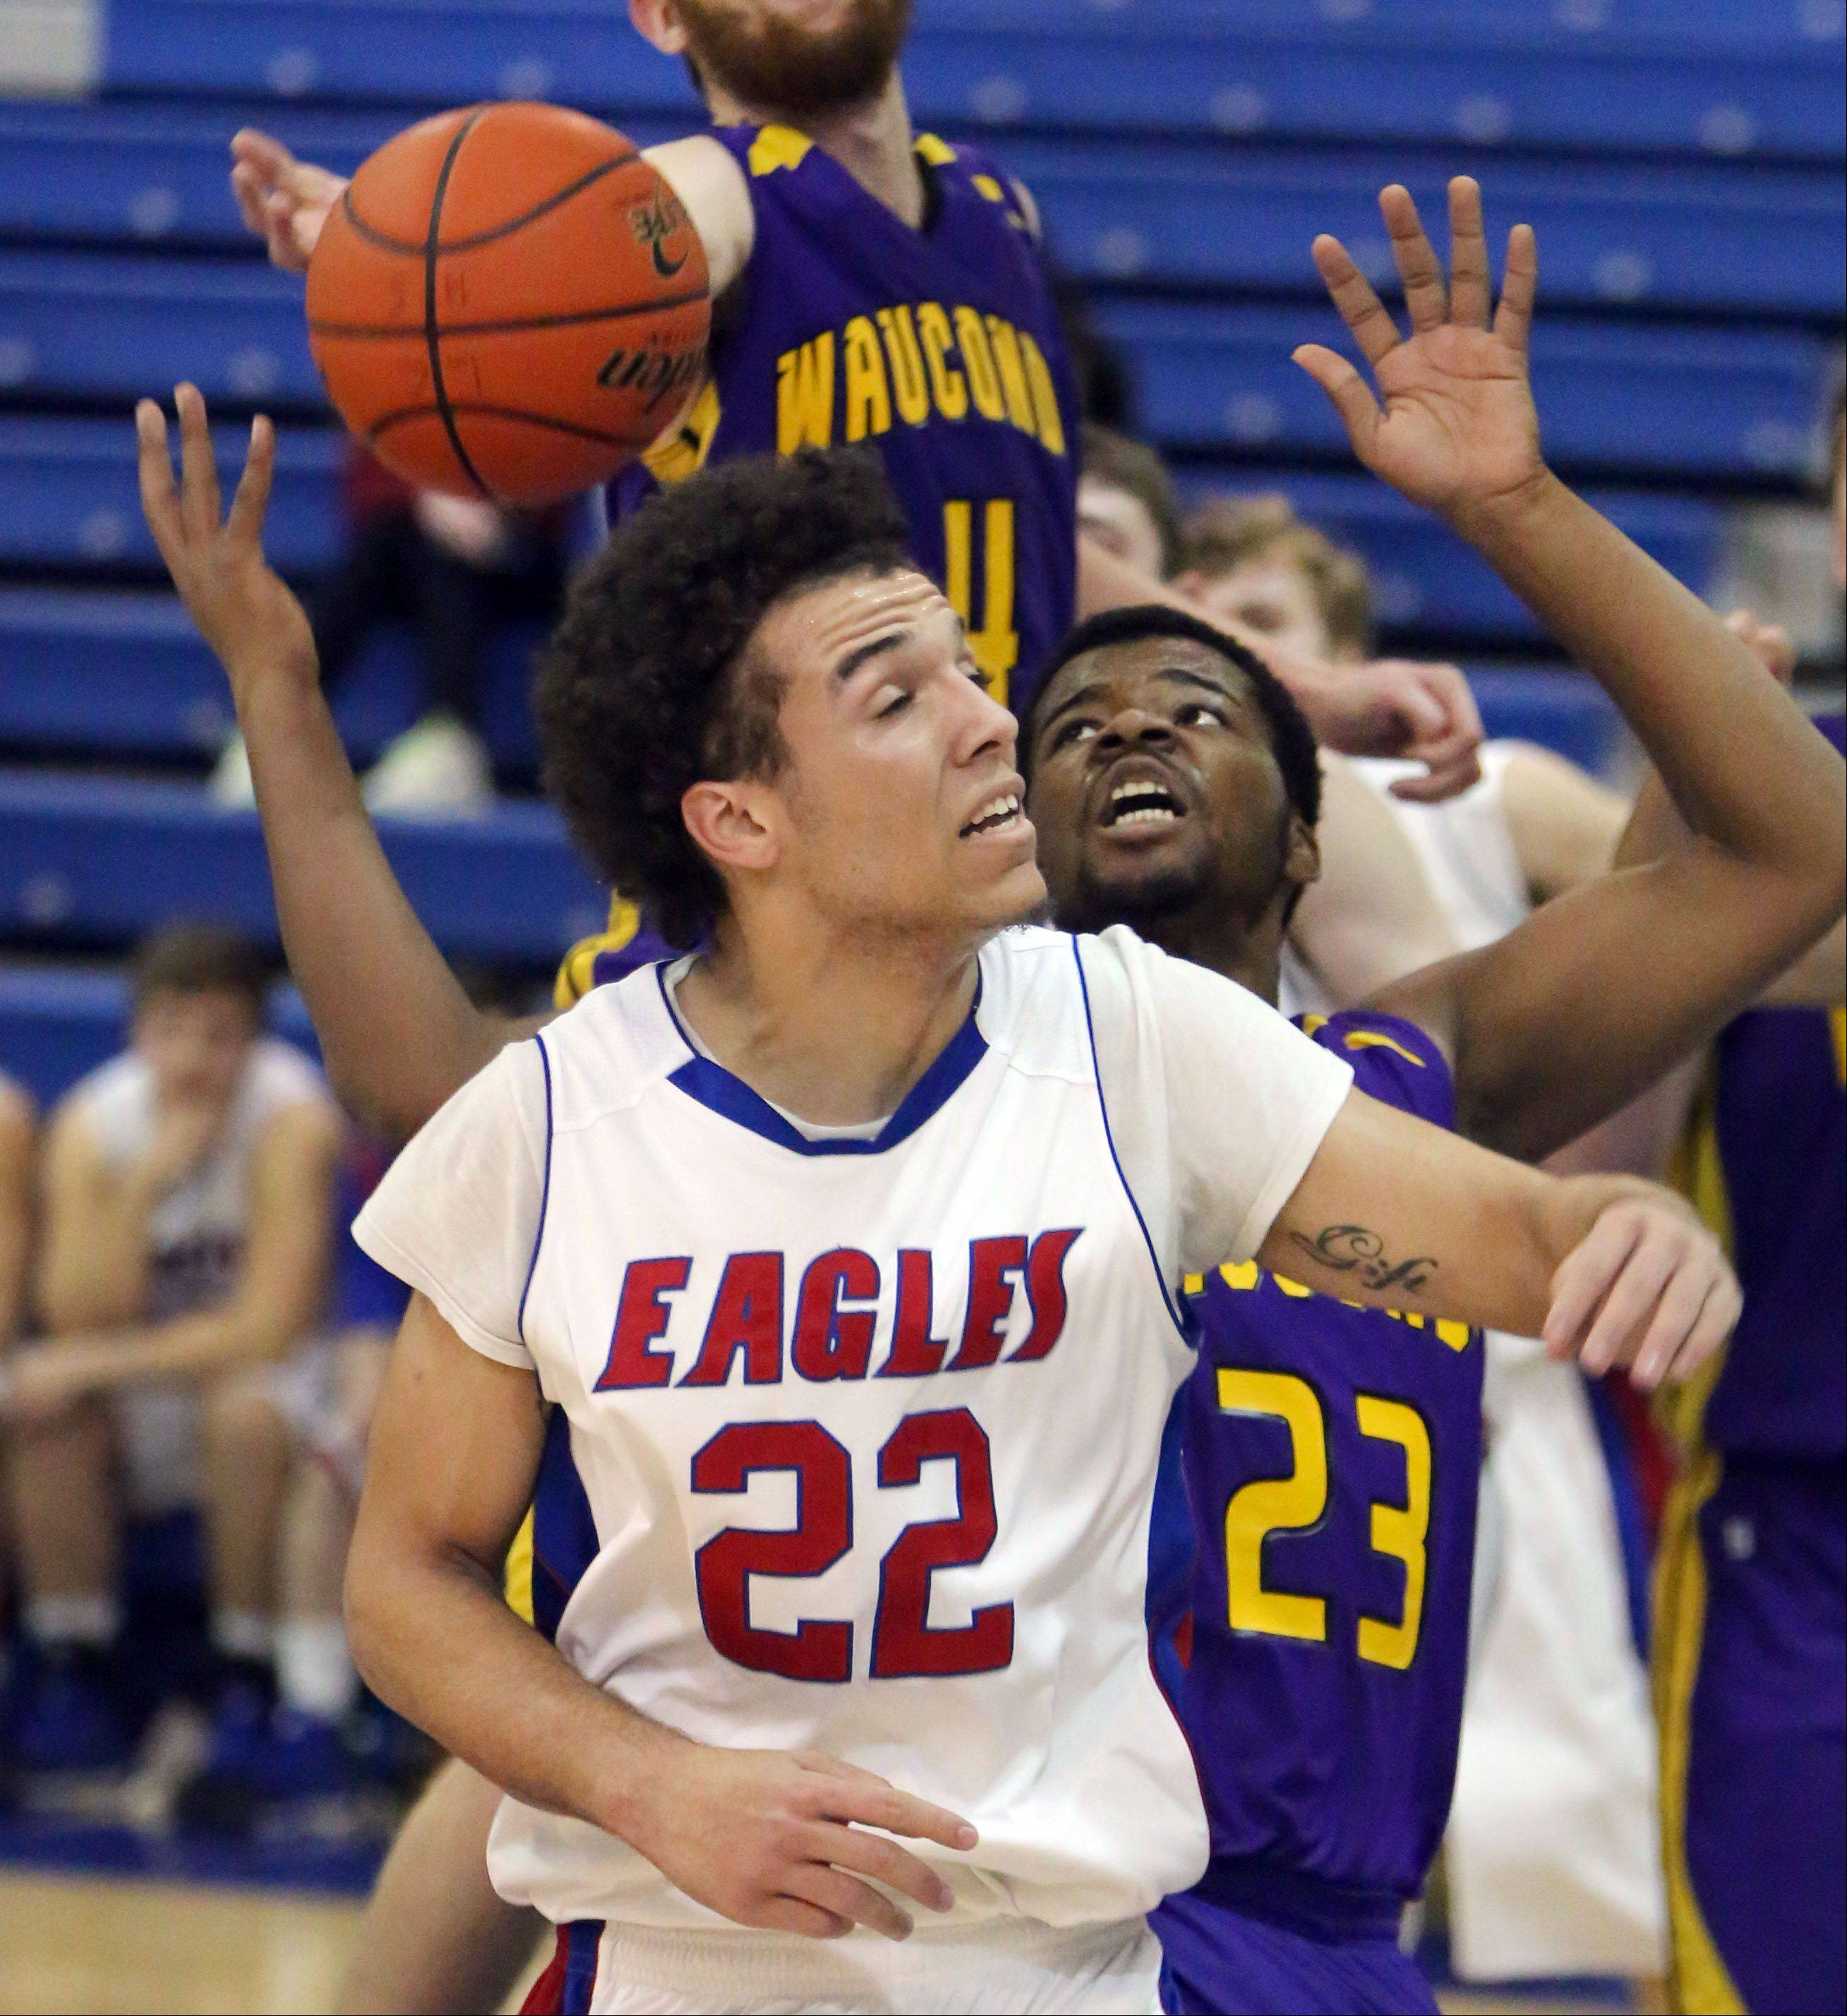 Lakes' Tramone Hudson, left, and Wauconda's Dion Head try to track down a rebound.